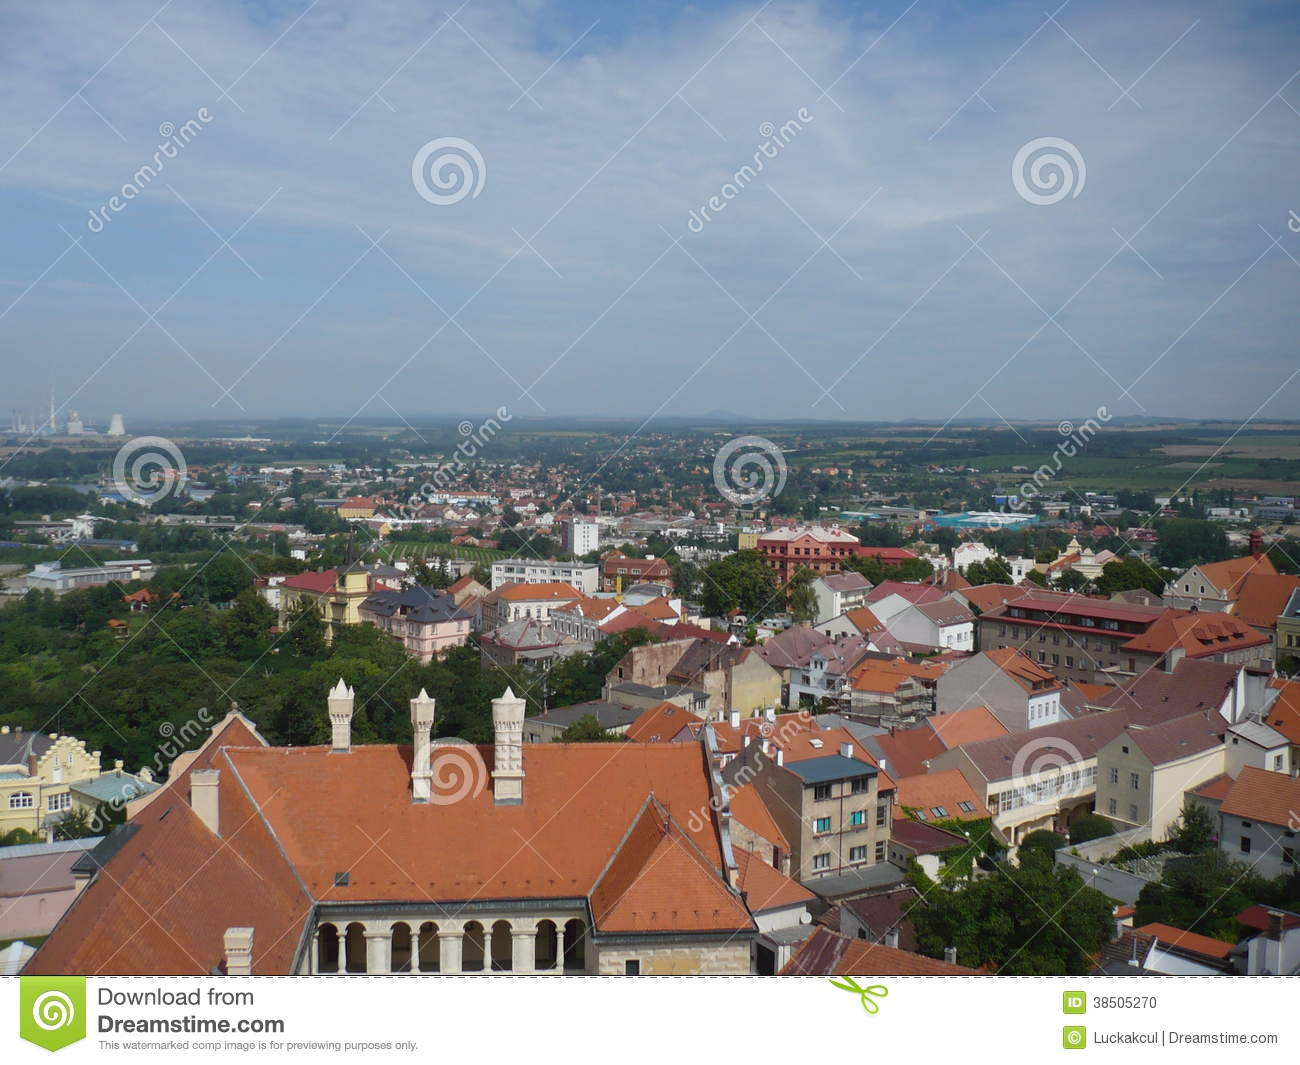 Roofs of houses in Mělník town